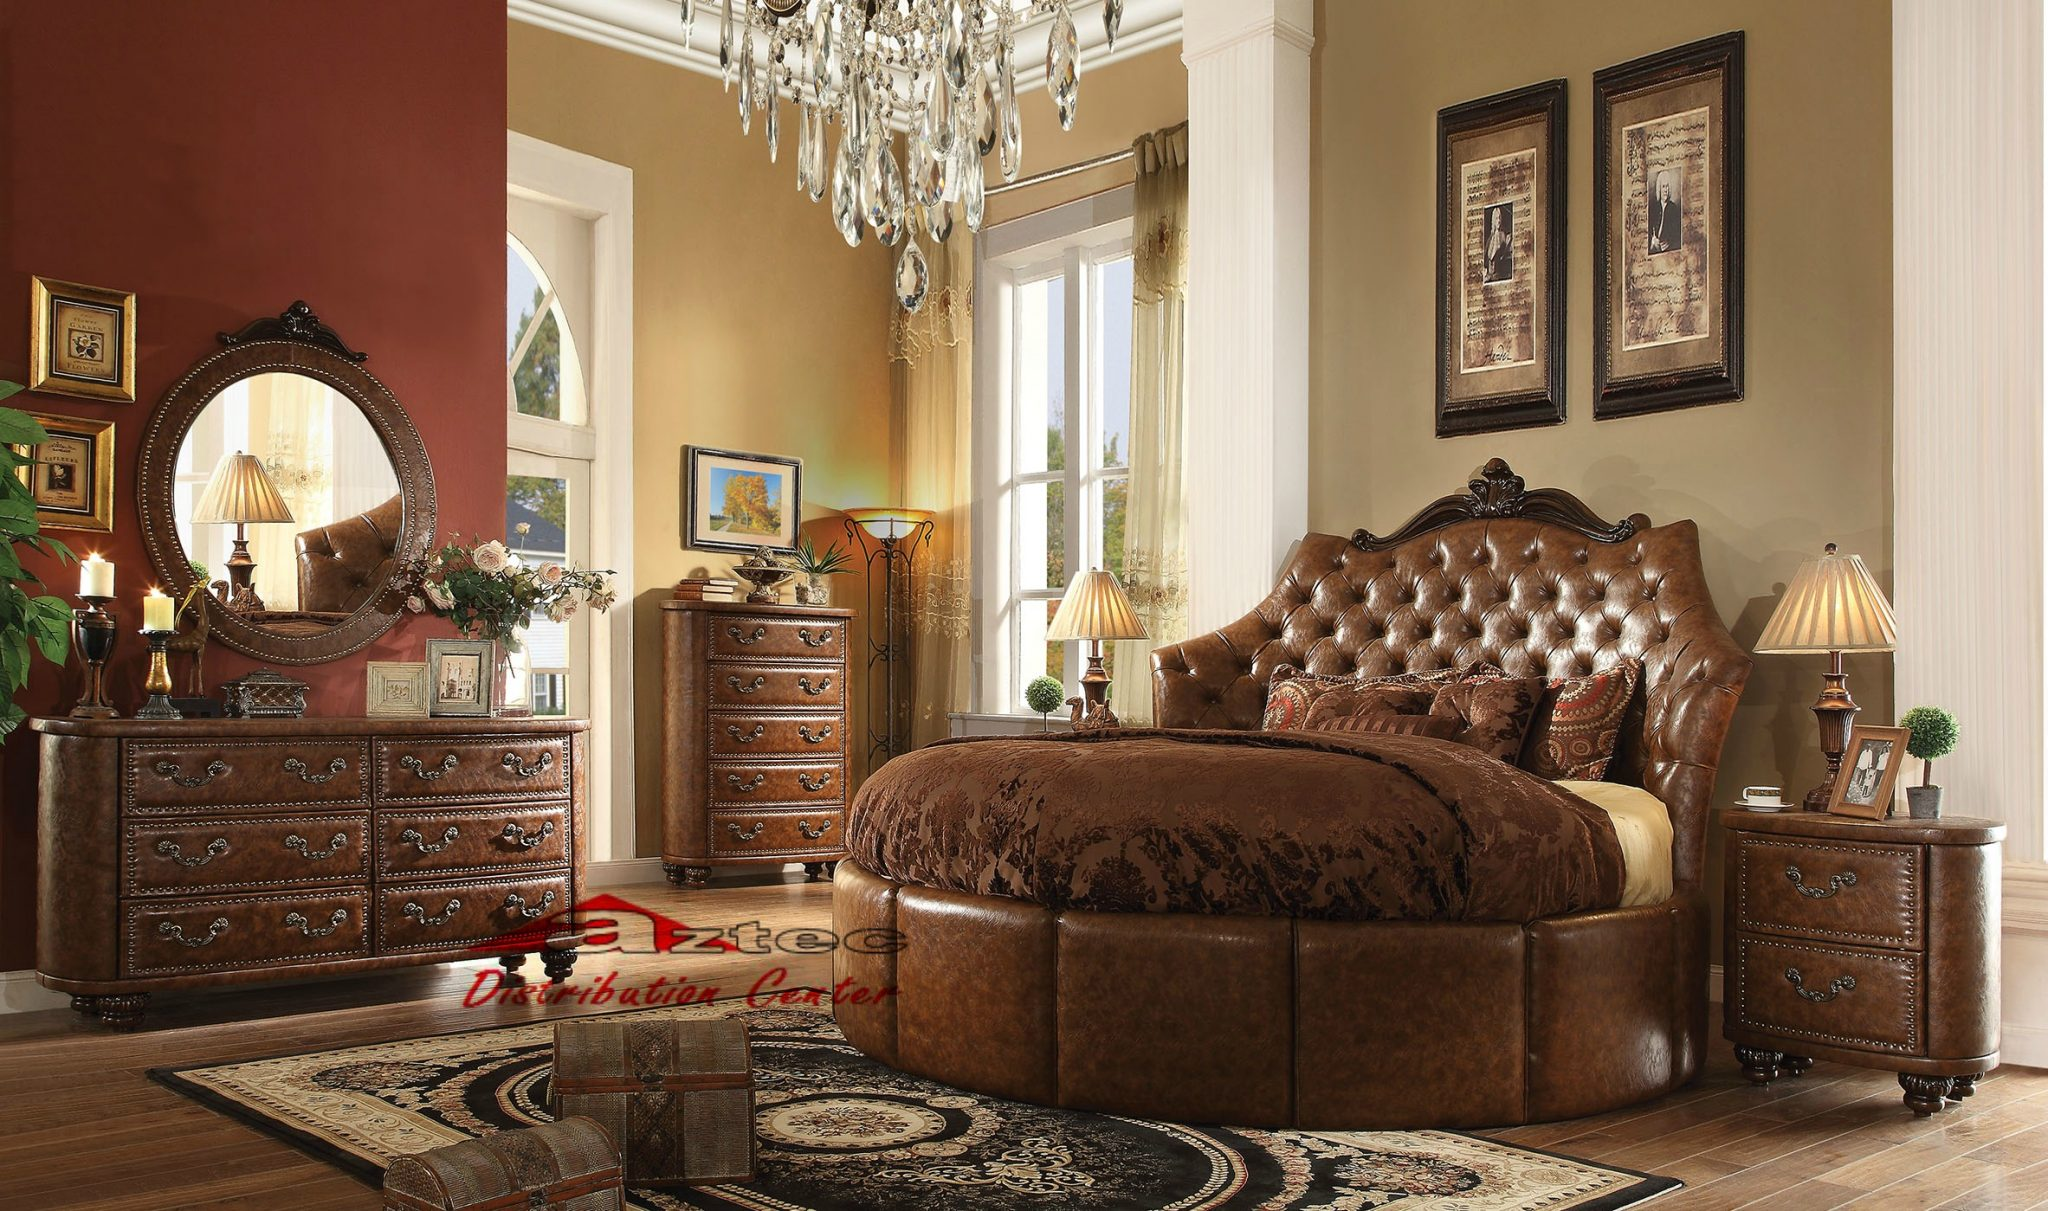 Acme Verada Cresent Bedroom Set Houston Bellagio Furniture Stores Sets Ideas Ashley On Sale Frame Havertys Discontinued Master Levin Ledelle Sleigh Apppie Org